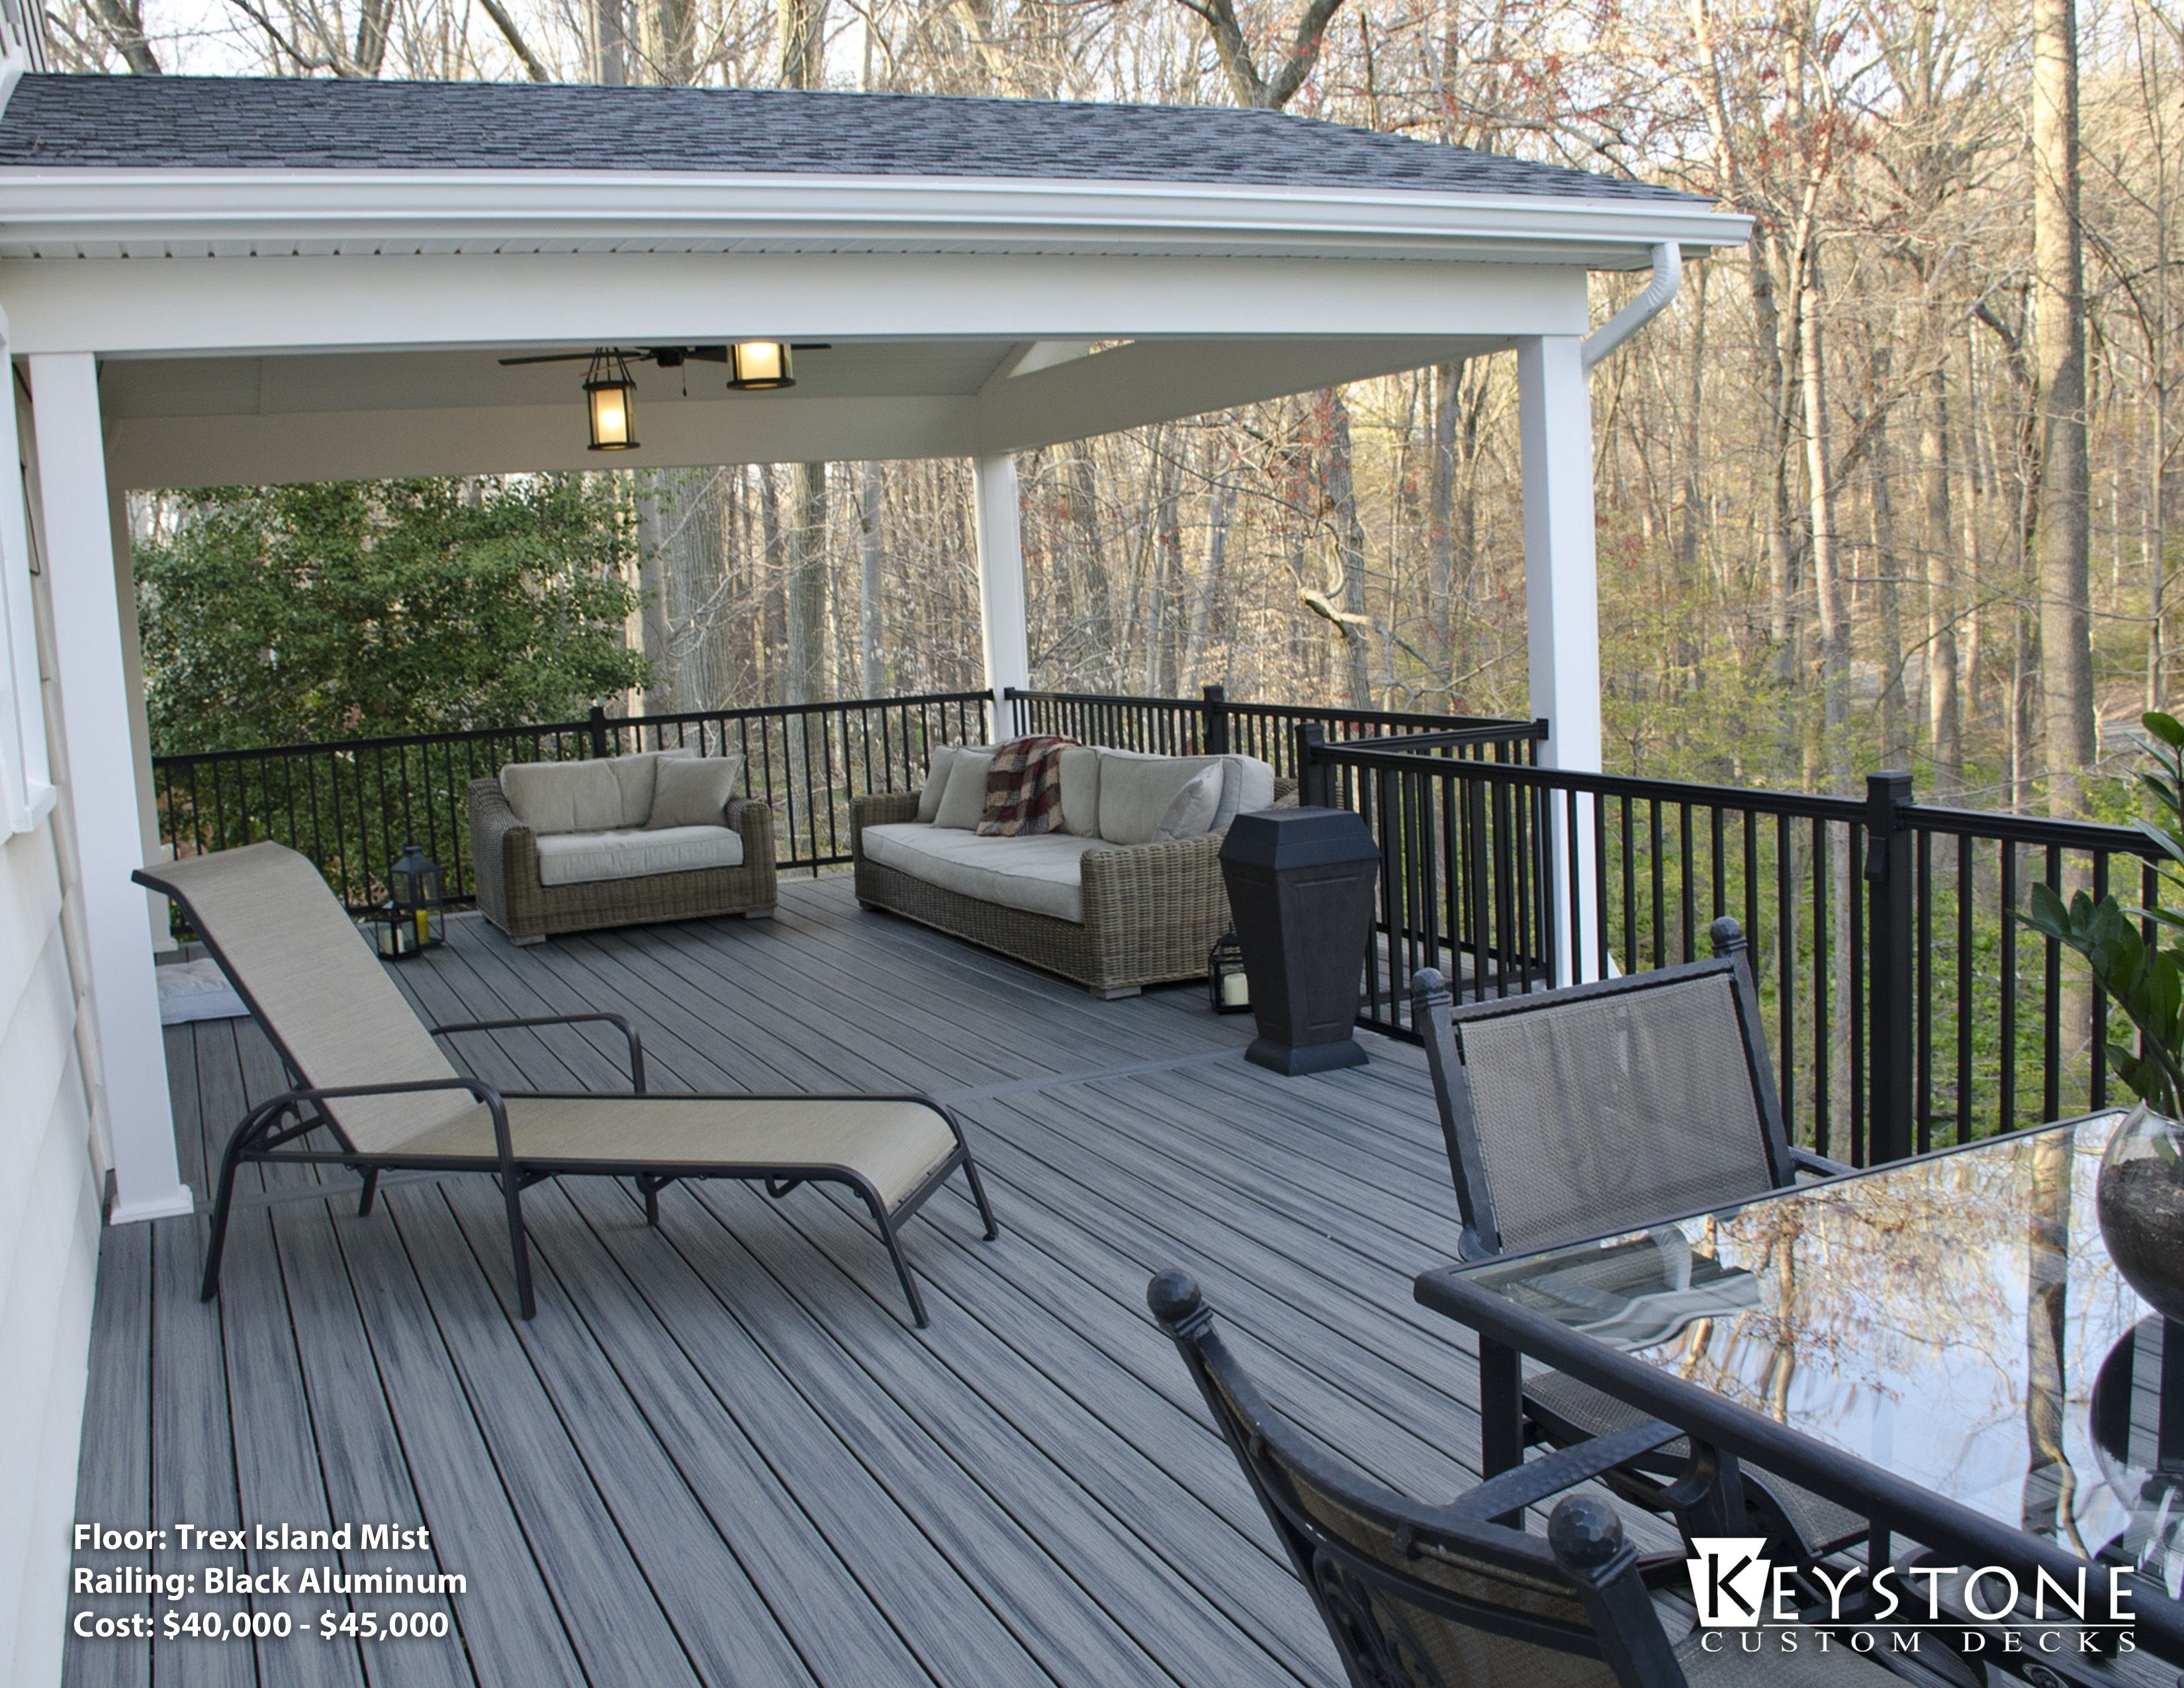 Best 25 trex railing ideas on pinterest stair and step lights this modern oasis showcases trex island mist decking with an aluminum railing system the main baanklon Image collections